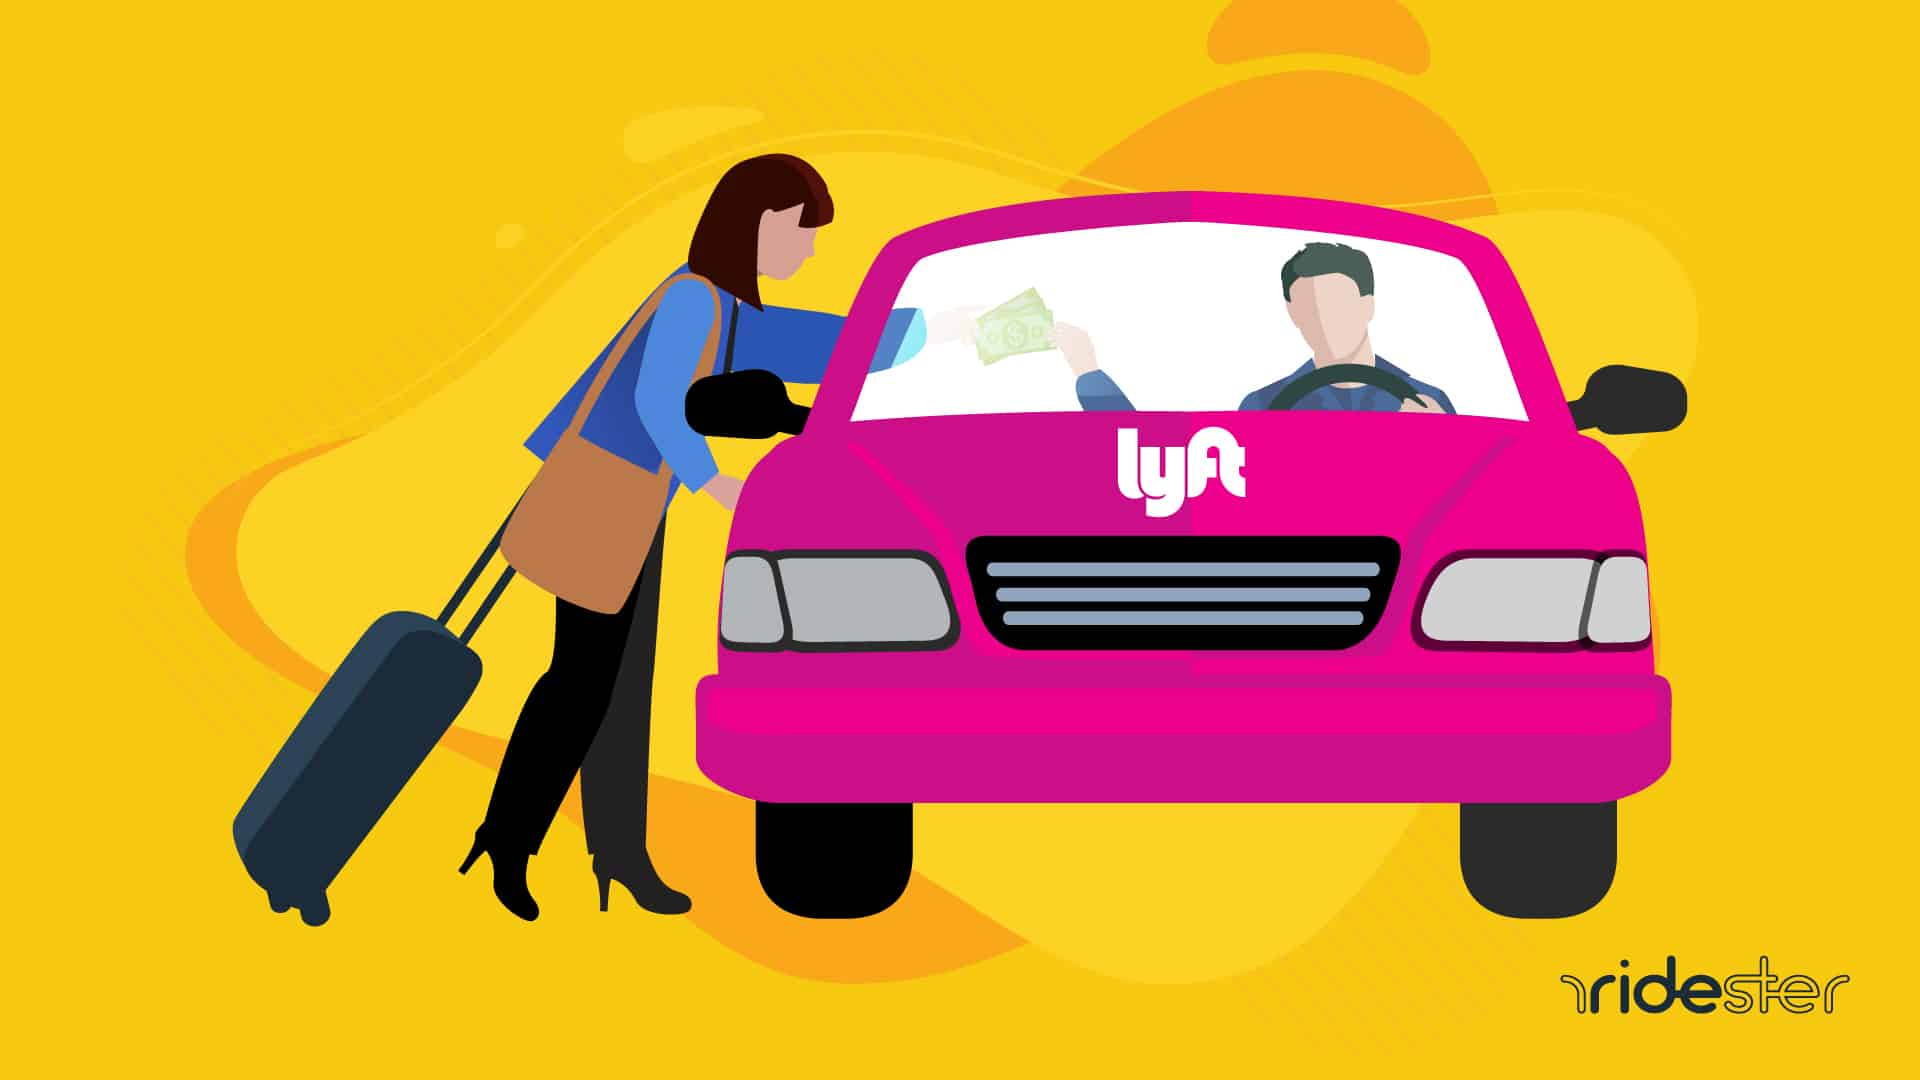 a vector graphic of a woman handing a lyft driver lyft tipping money through the window of the car after a ride